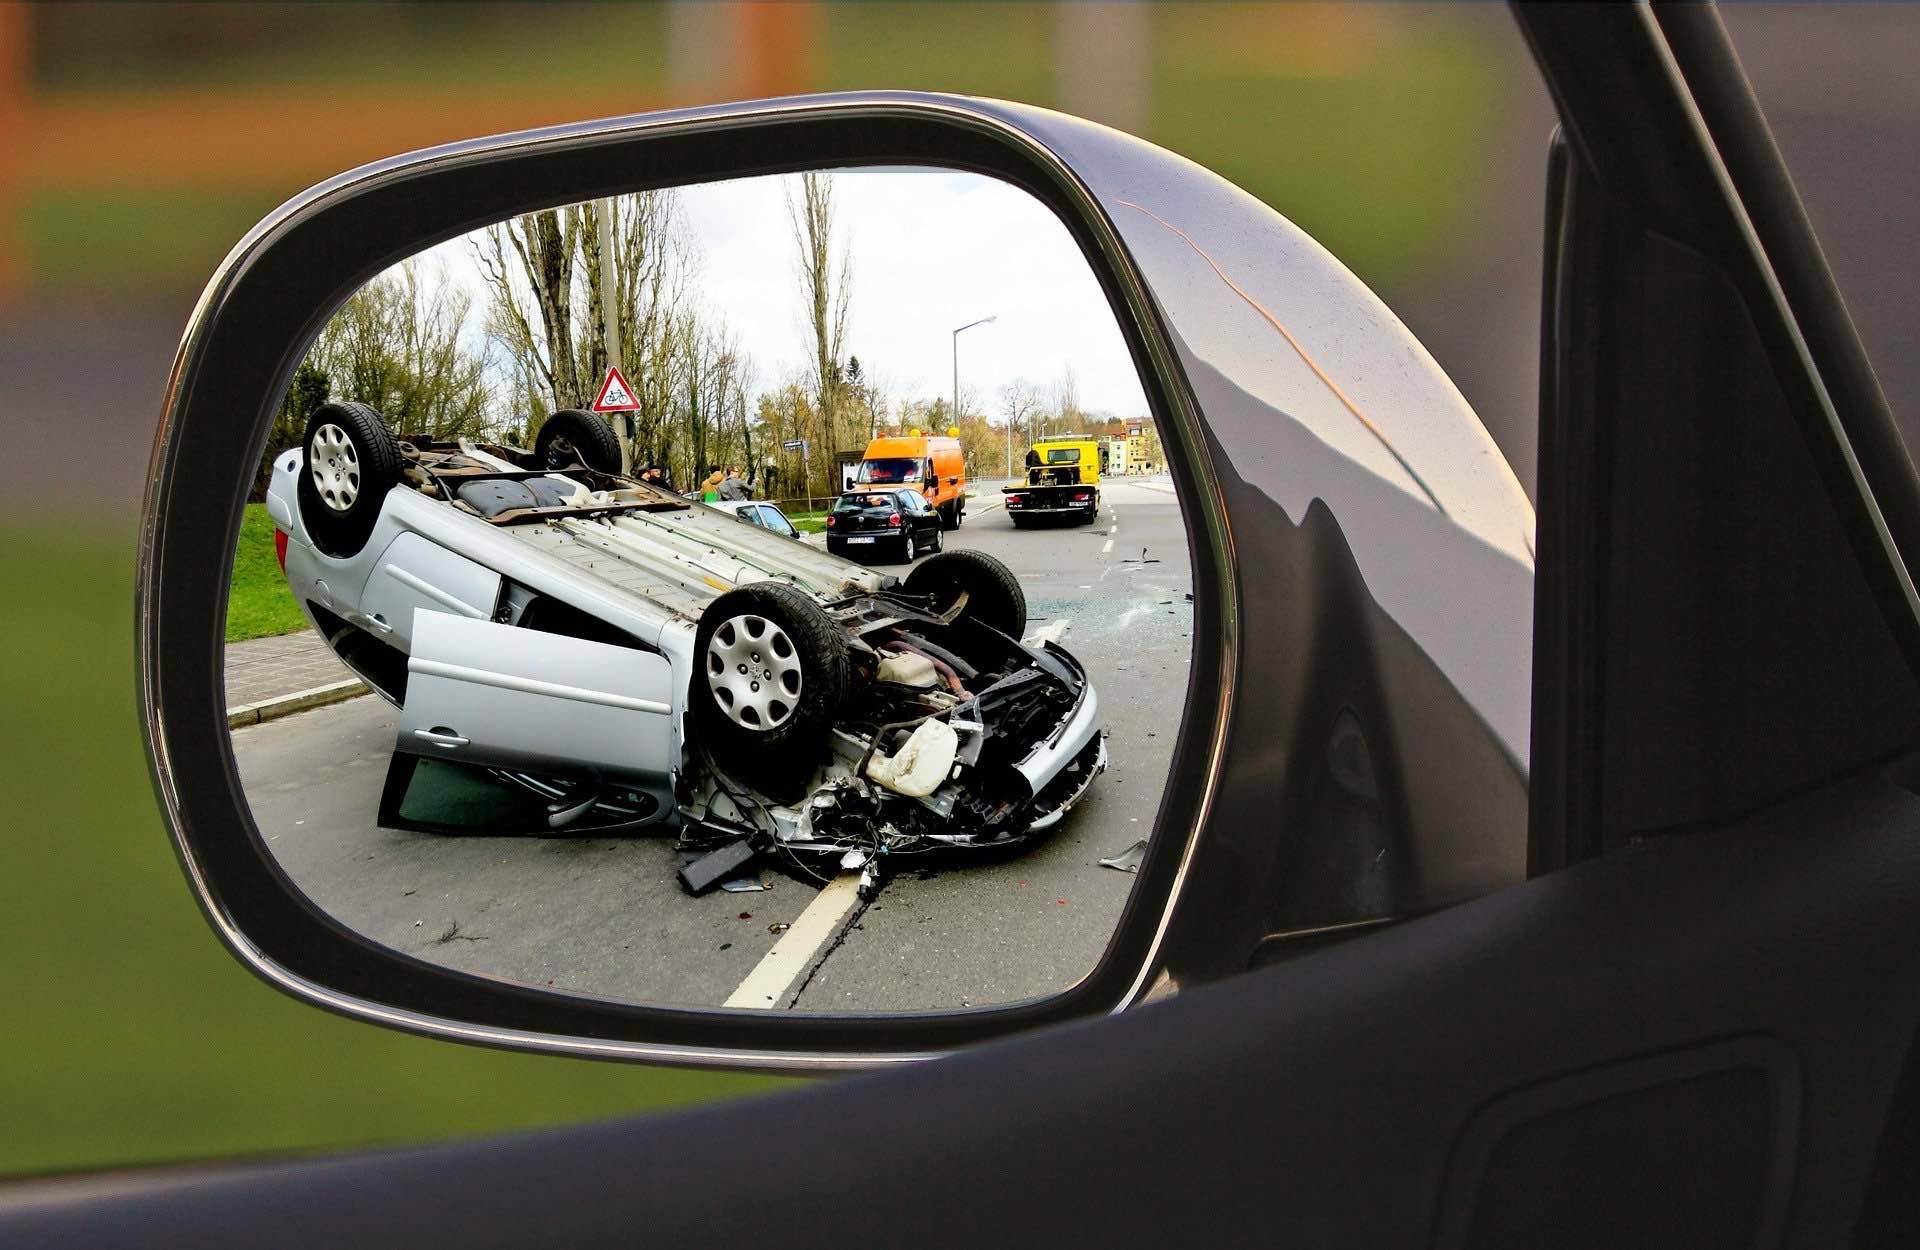 A traffic accident with a white car flipped on its roof as seen through a side mirror on the Archangel Law Group website Traffic Court page